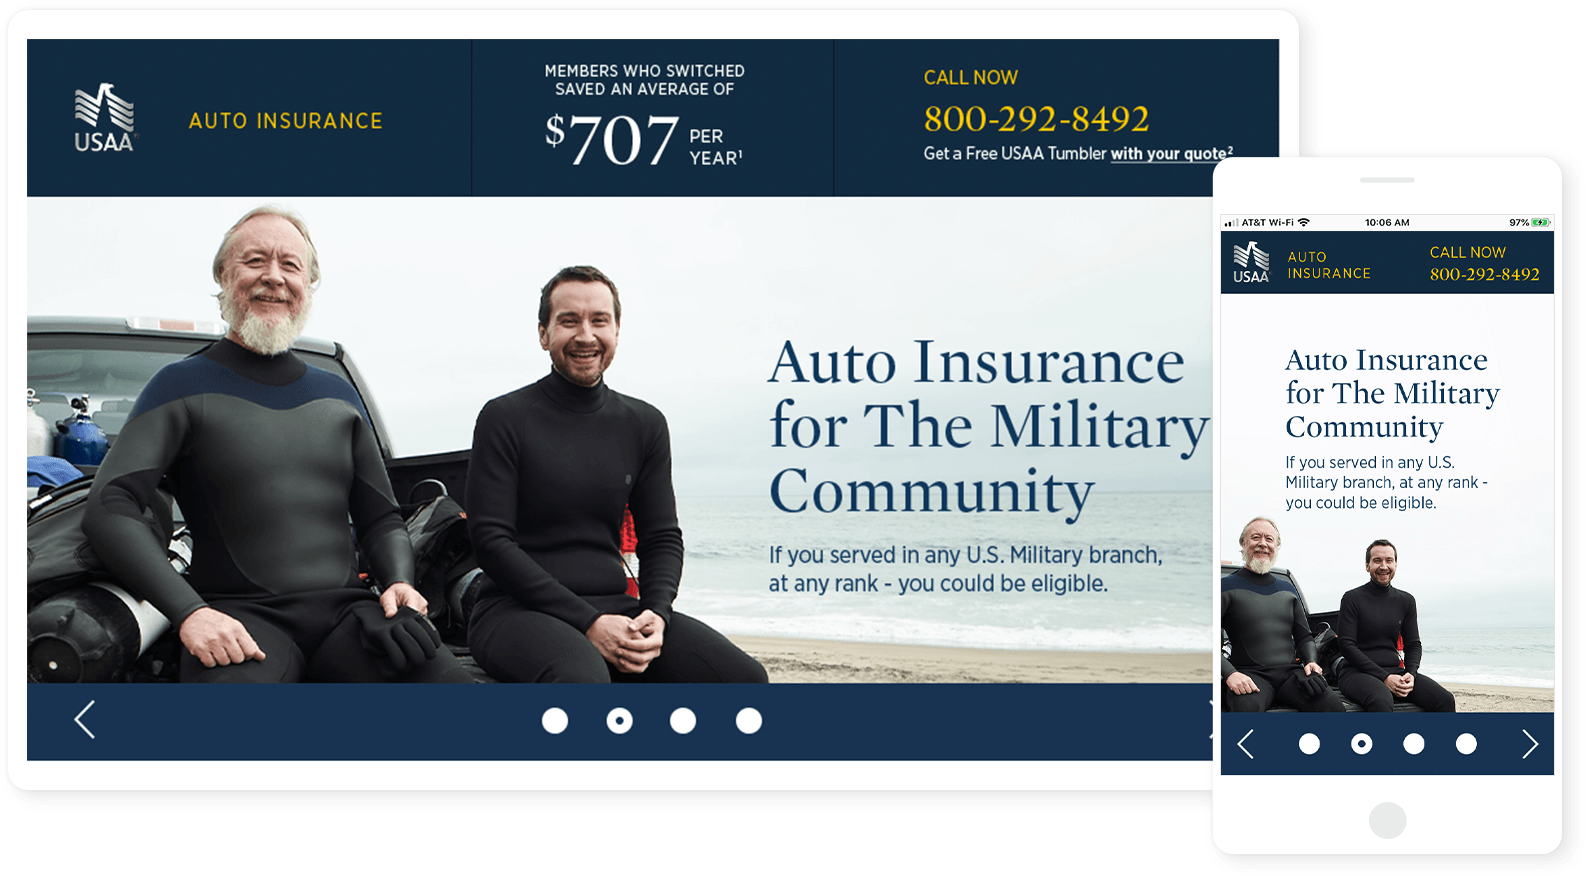 USAA Auto Insurance Landing Page